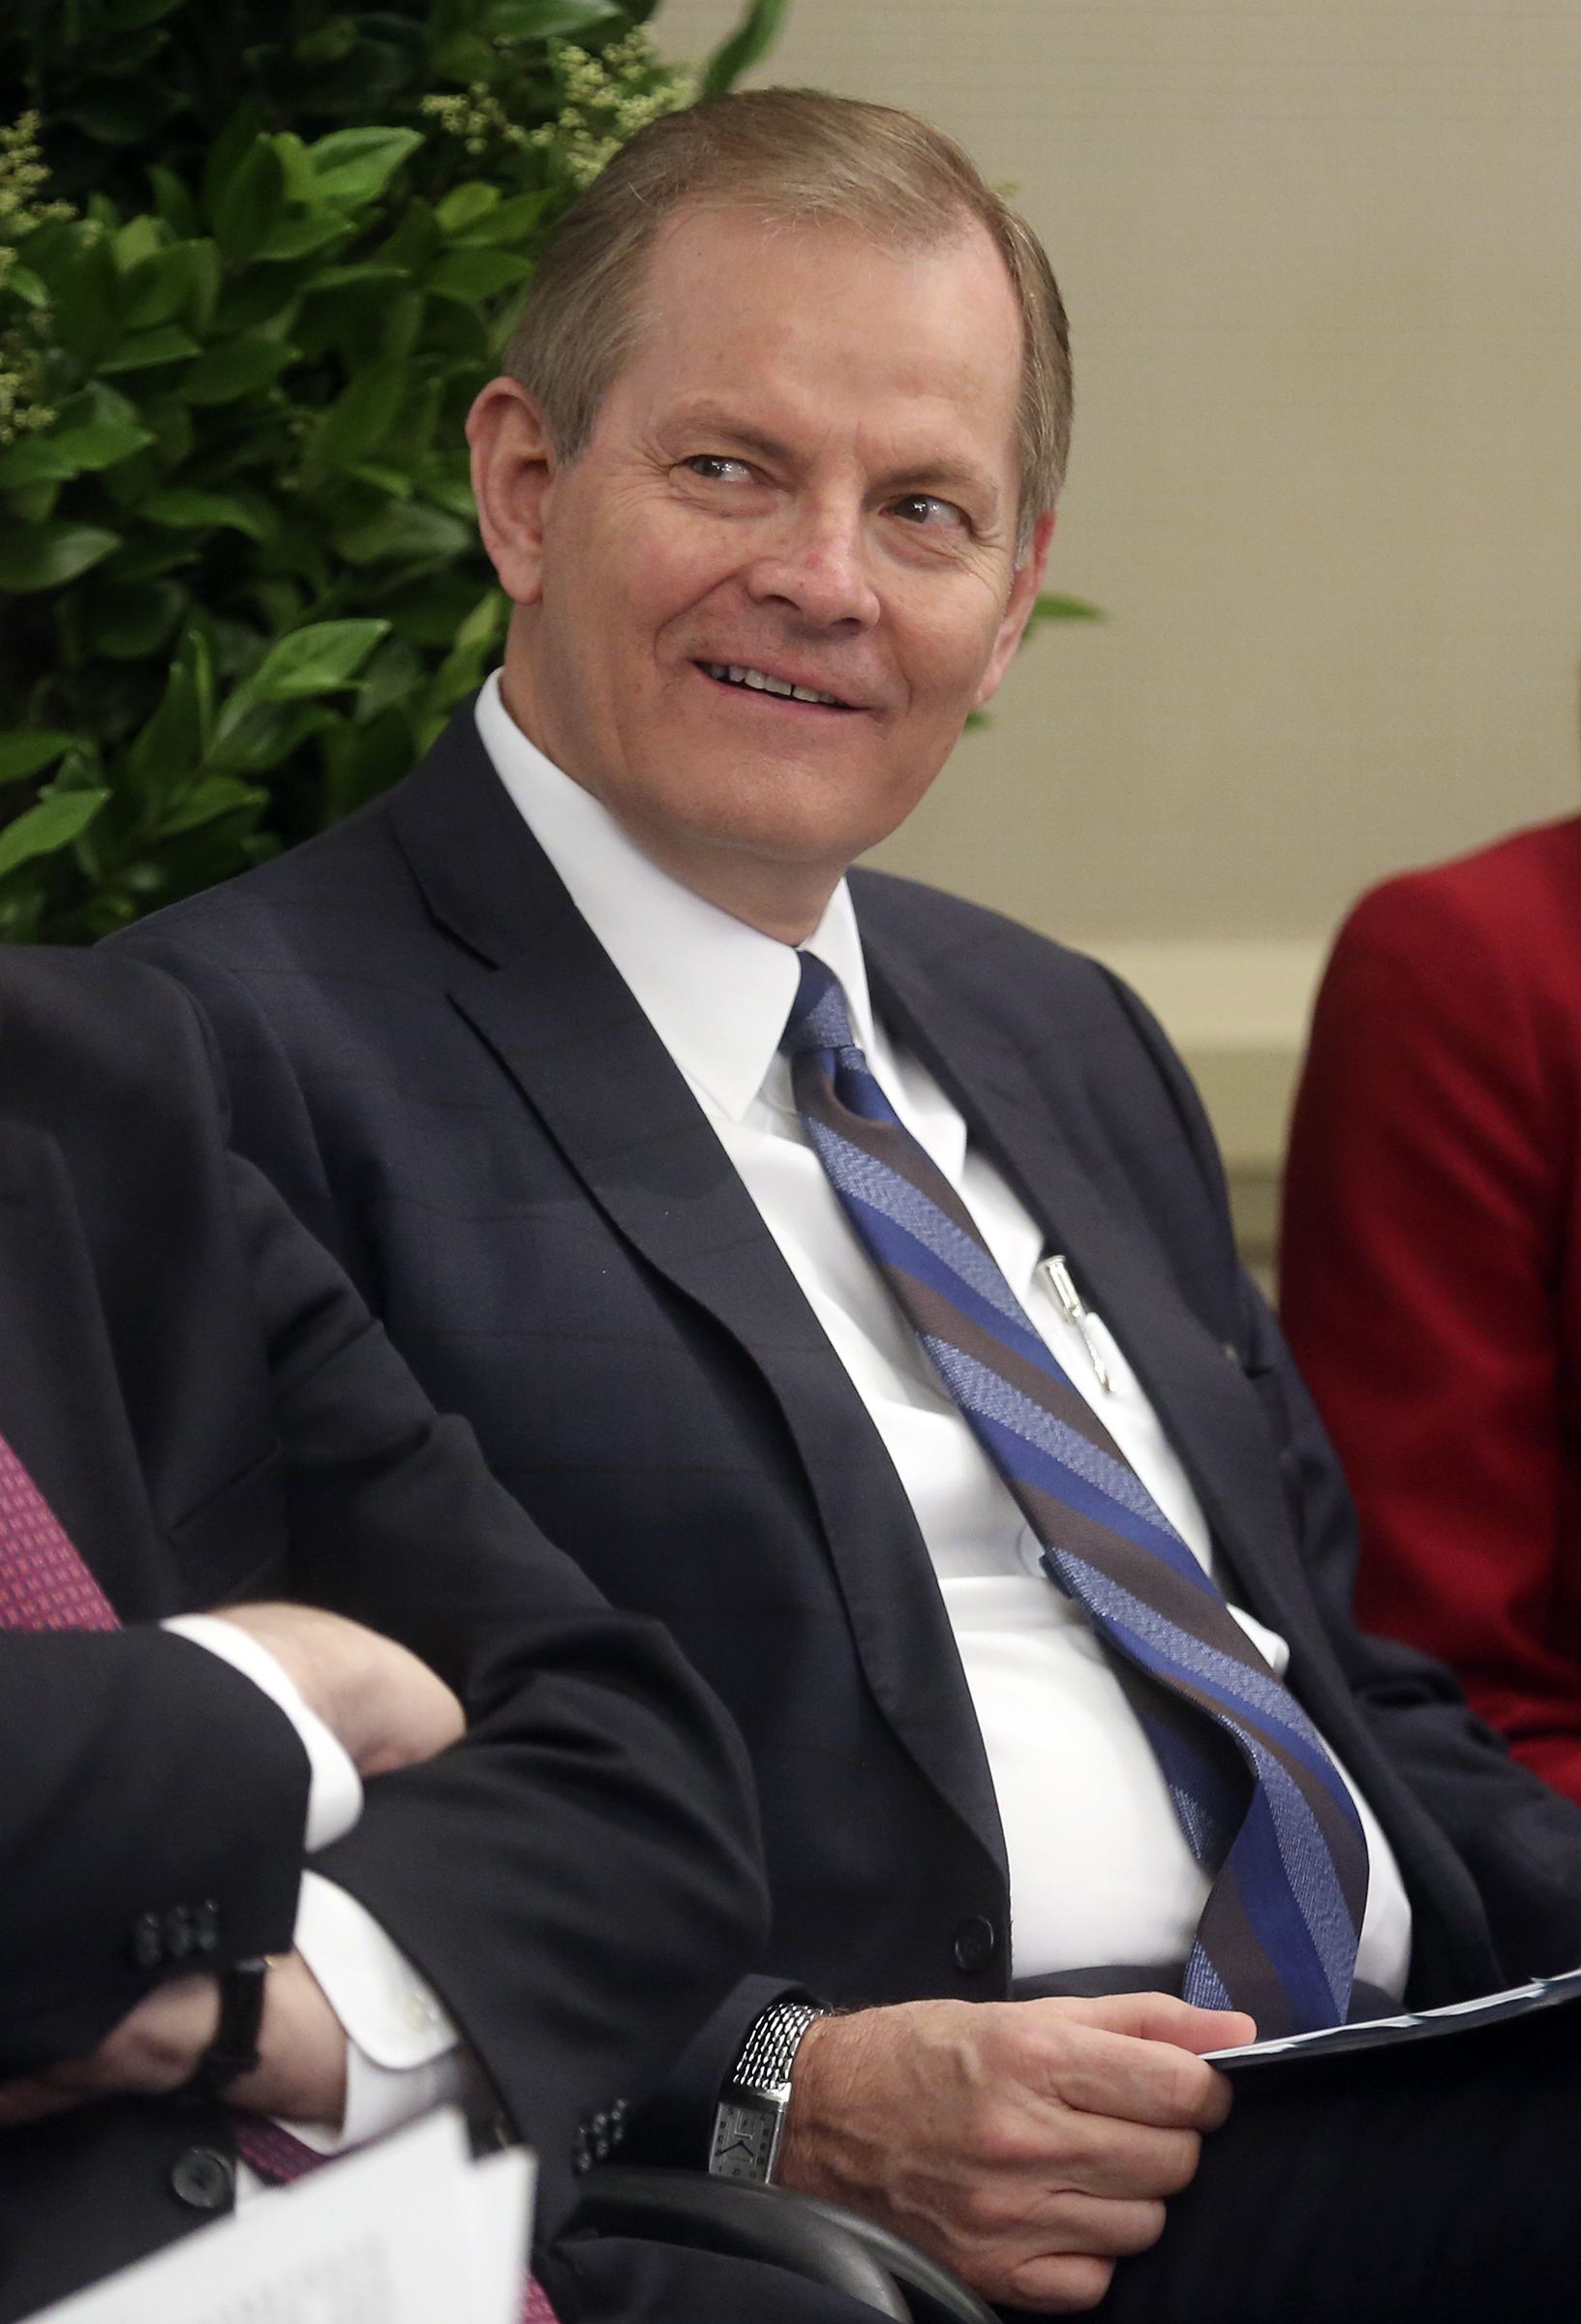 Elder Gary E. Stevenson, of the Quorum of the Twelve Apostles, listens to a speaker during news conference held for the newly renovated Oakland California Temple, of The Church of Jesus Christ of Latter-day Saints, in the temple Visitors' Center in Oakland, Calif., on Monday, May 6, 2019.